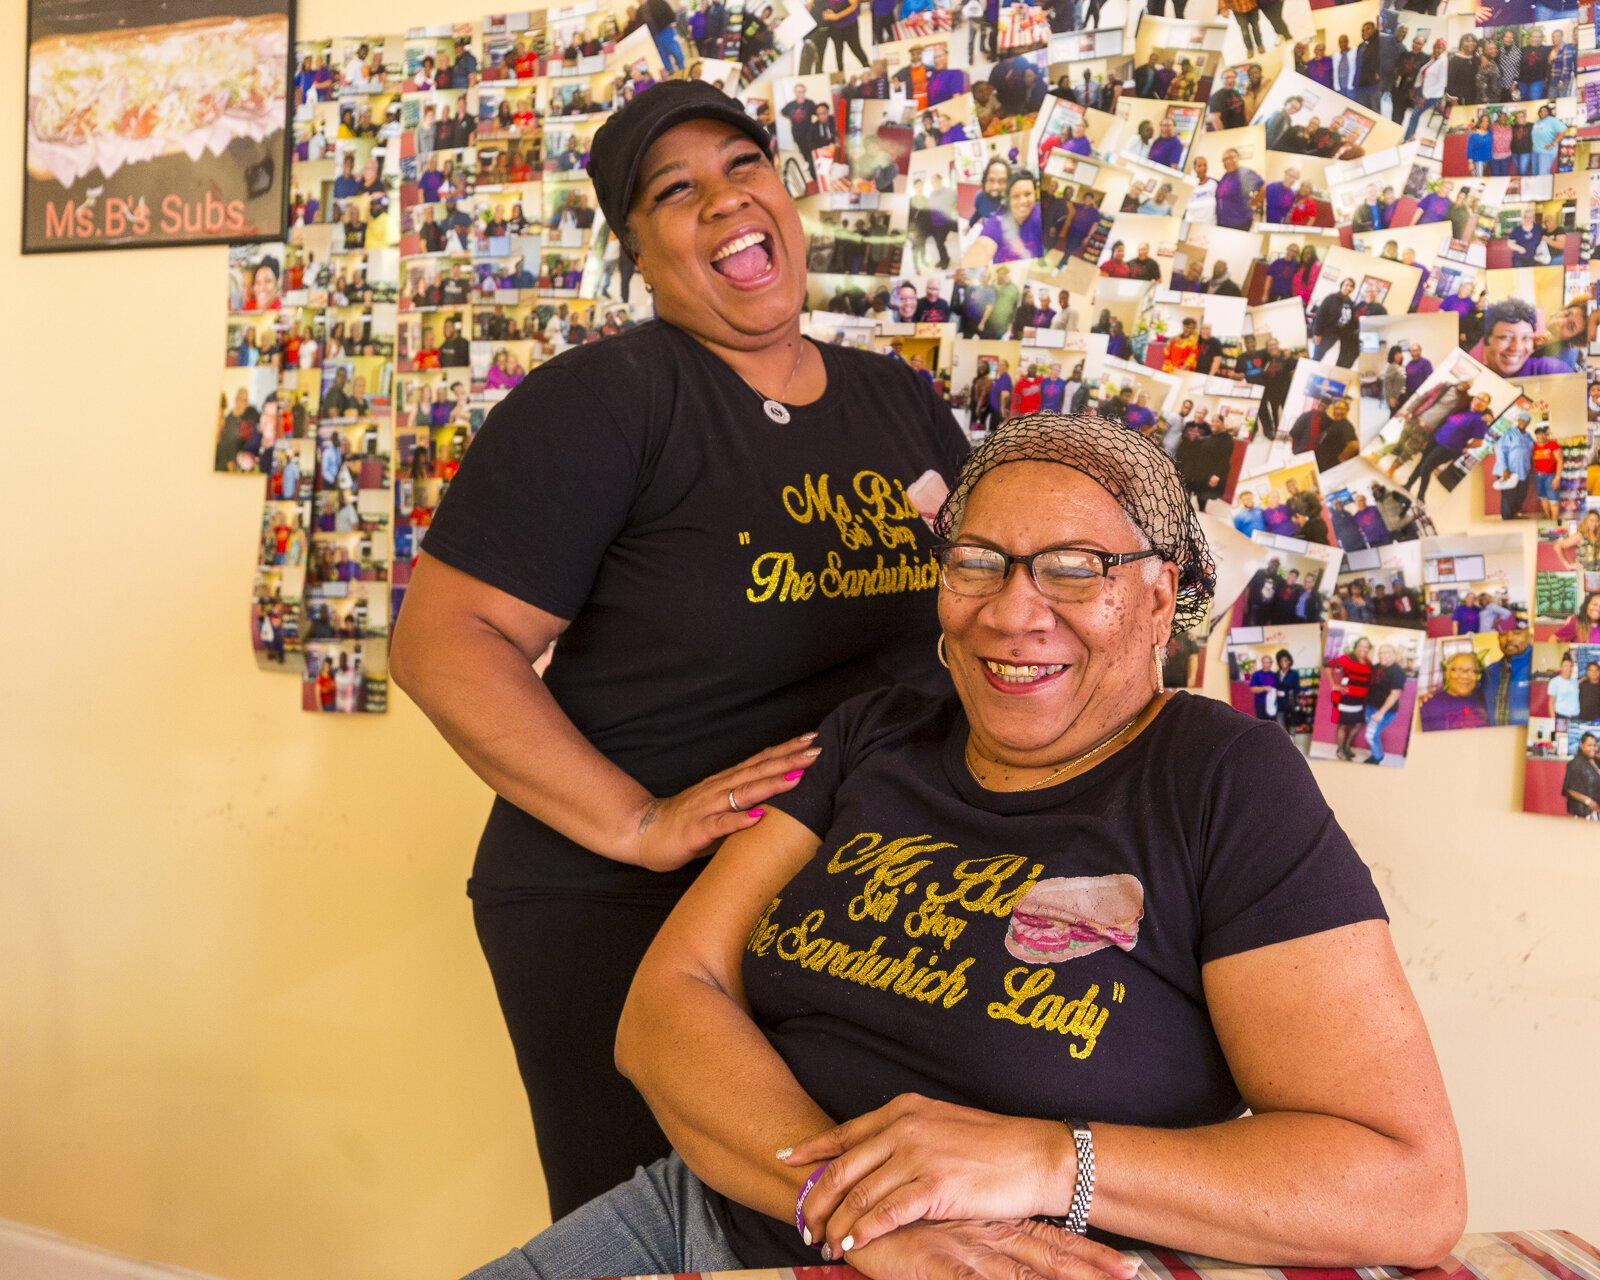 Stacy Bizzard (L) and her mother, Bonnie Harris, are co-owners of Ms. B's Sub Shop. They pose here in front of a wall of photos of satisfied customers. (Ziggy Mack)